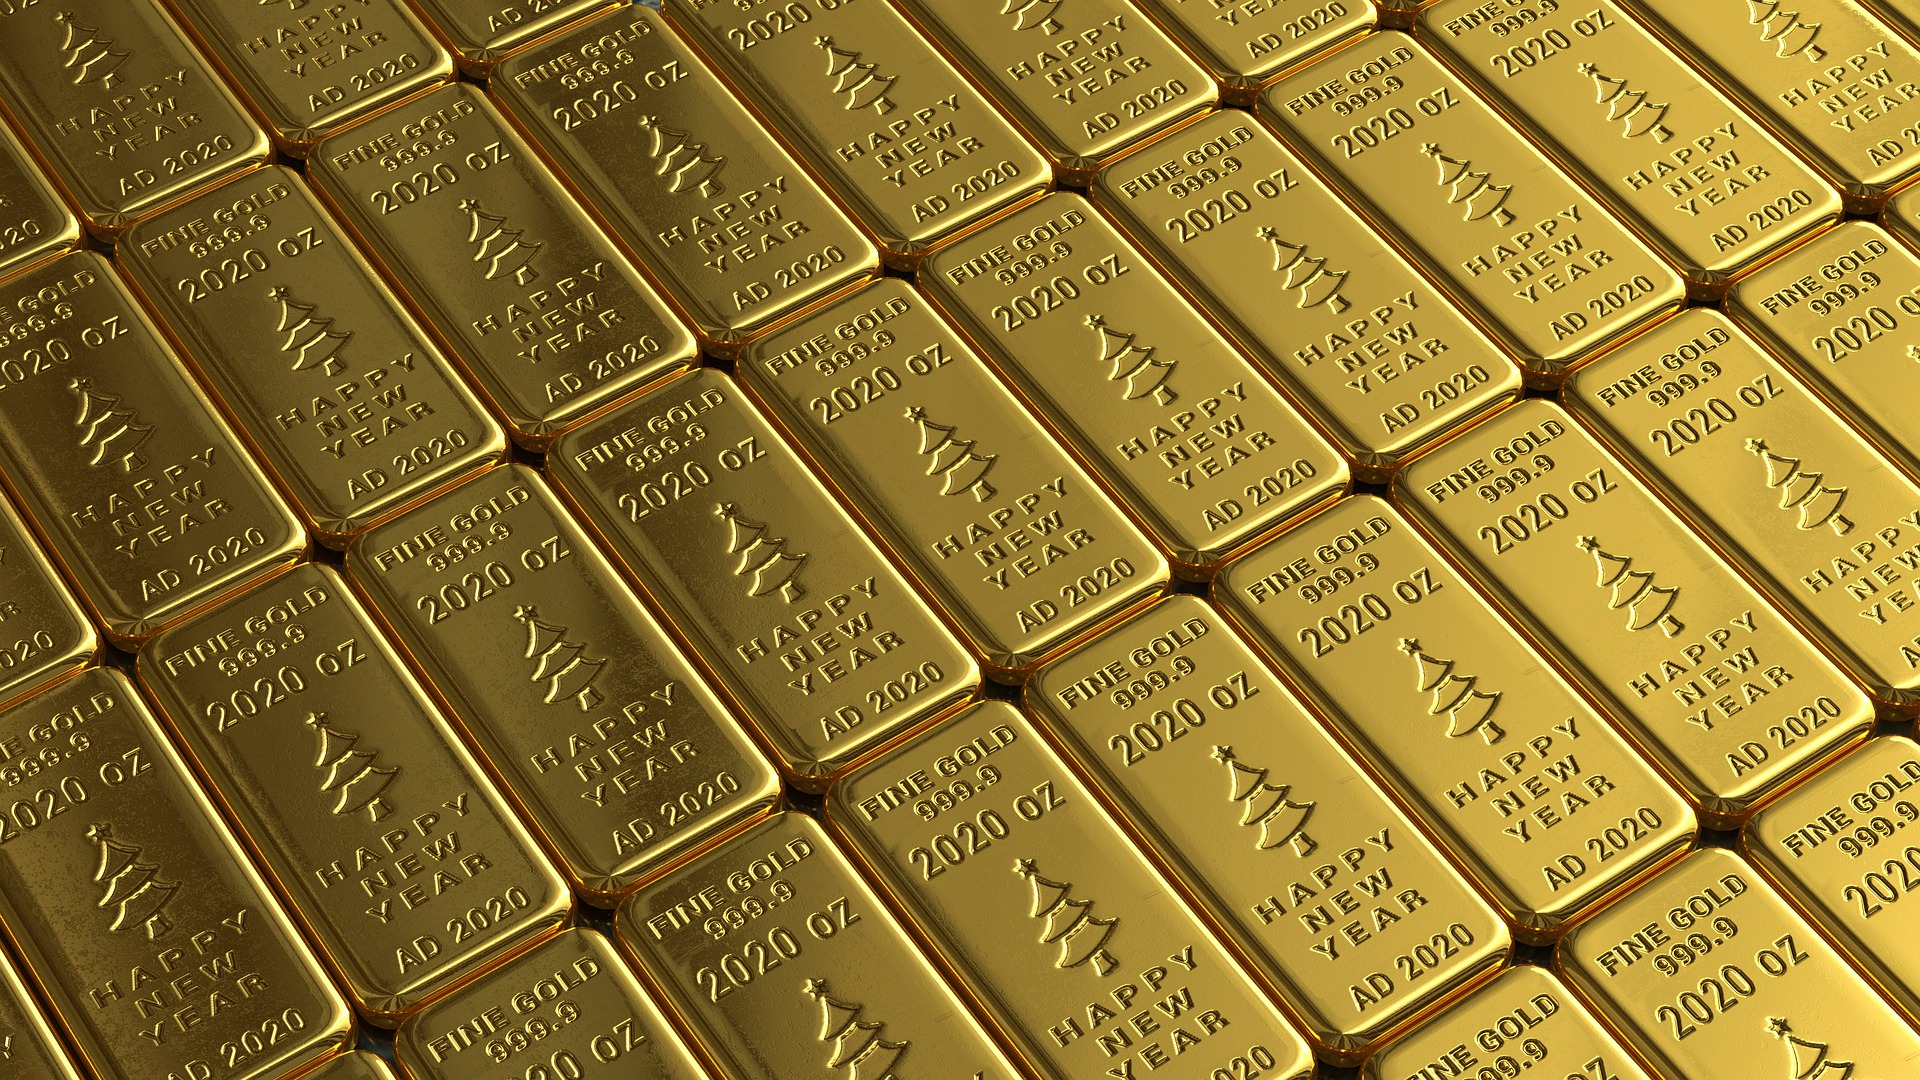 Central Bank of UAE sells gold to minimize economic impact